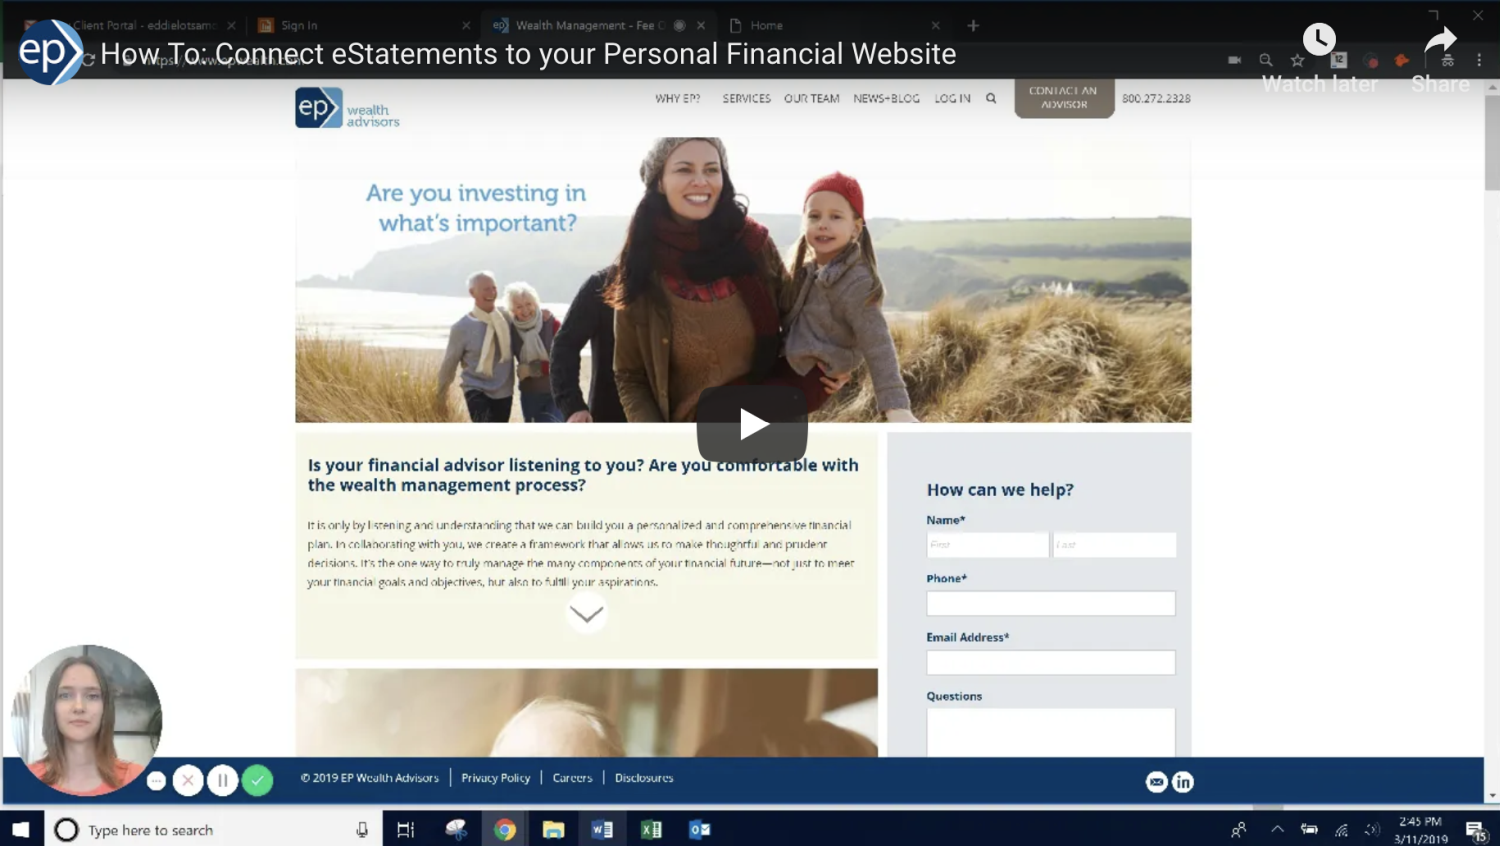 How To: Connect Your Personal Financial Website to eStatements (video)